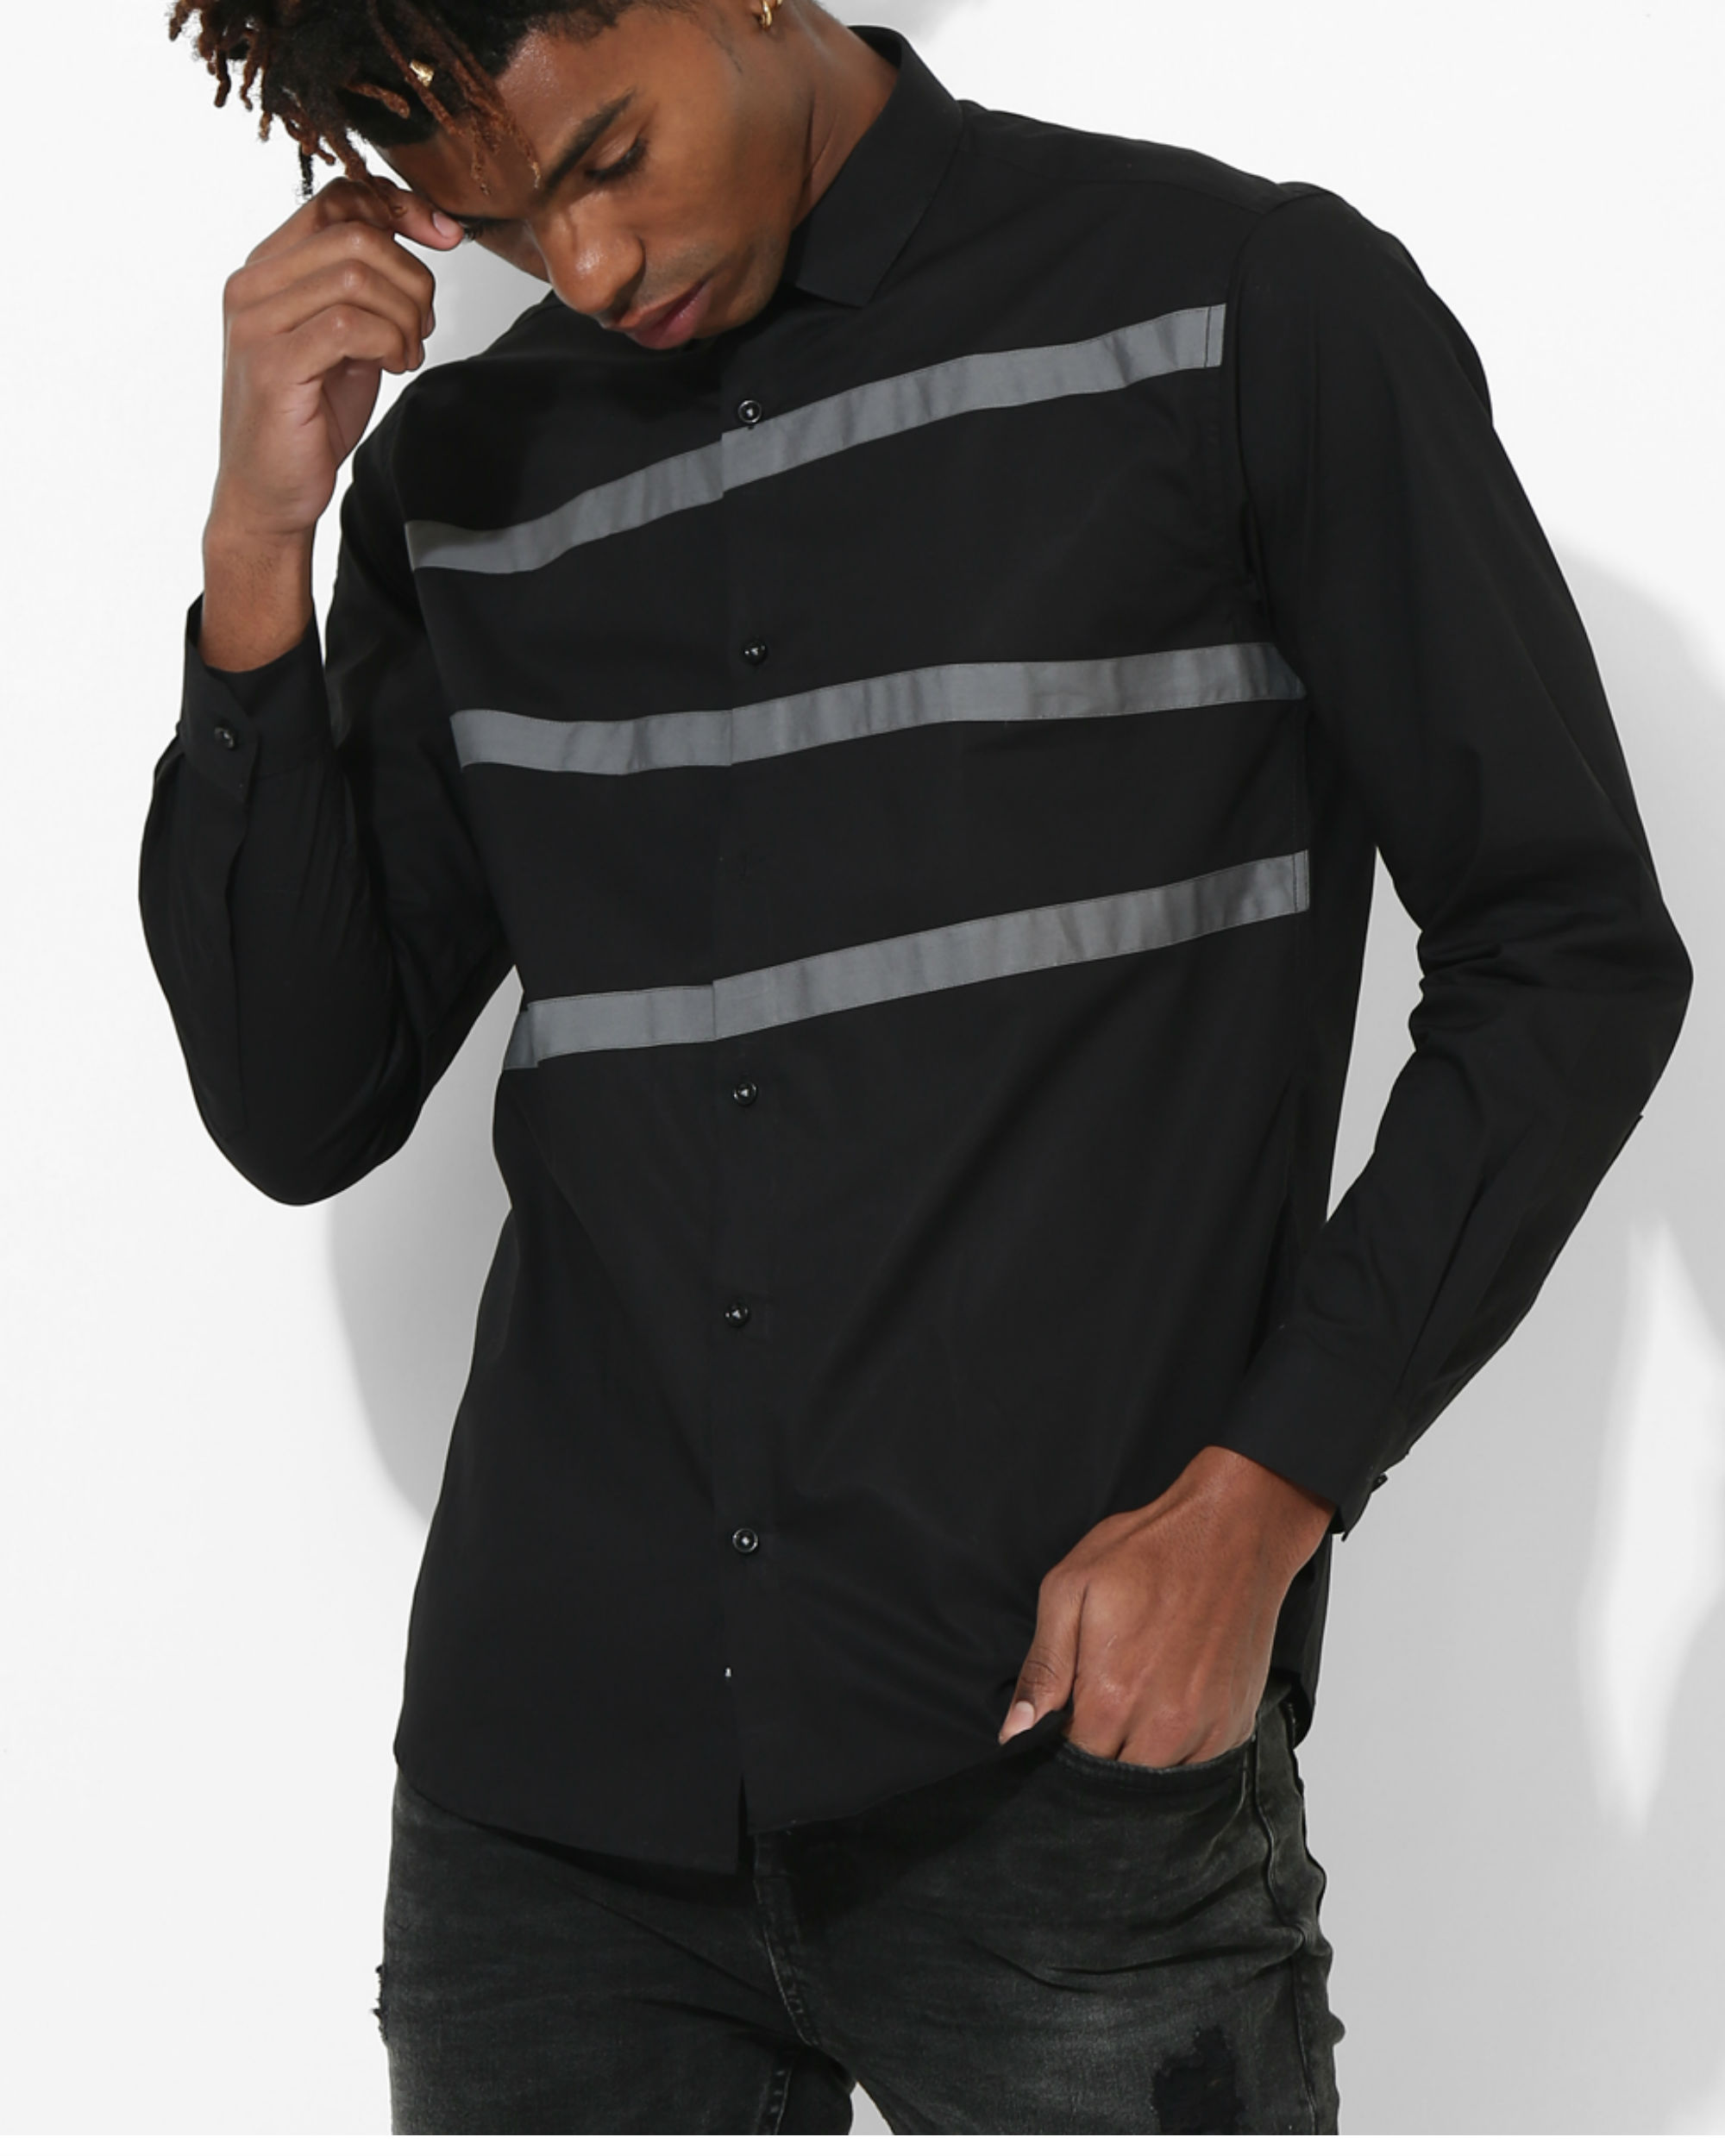 Panel Black Three Stripes shirt